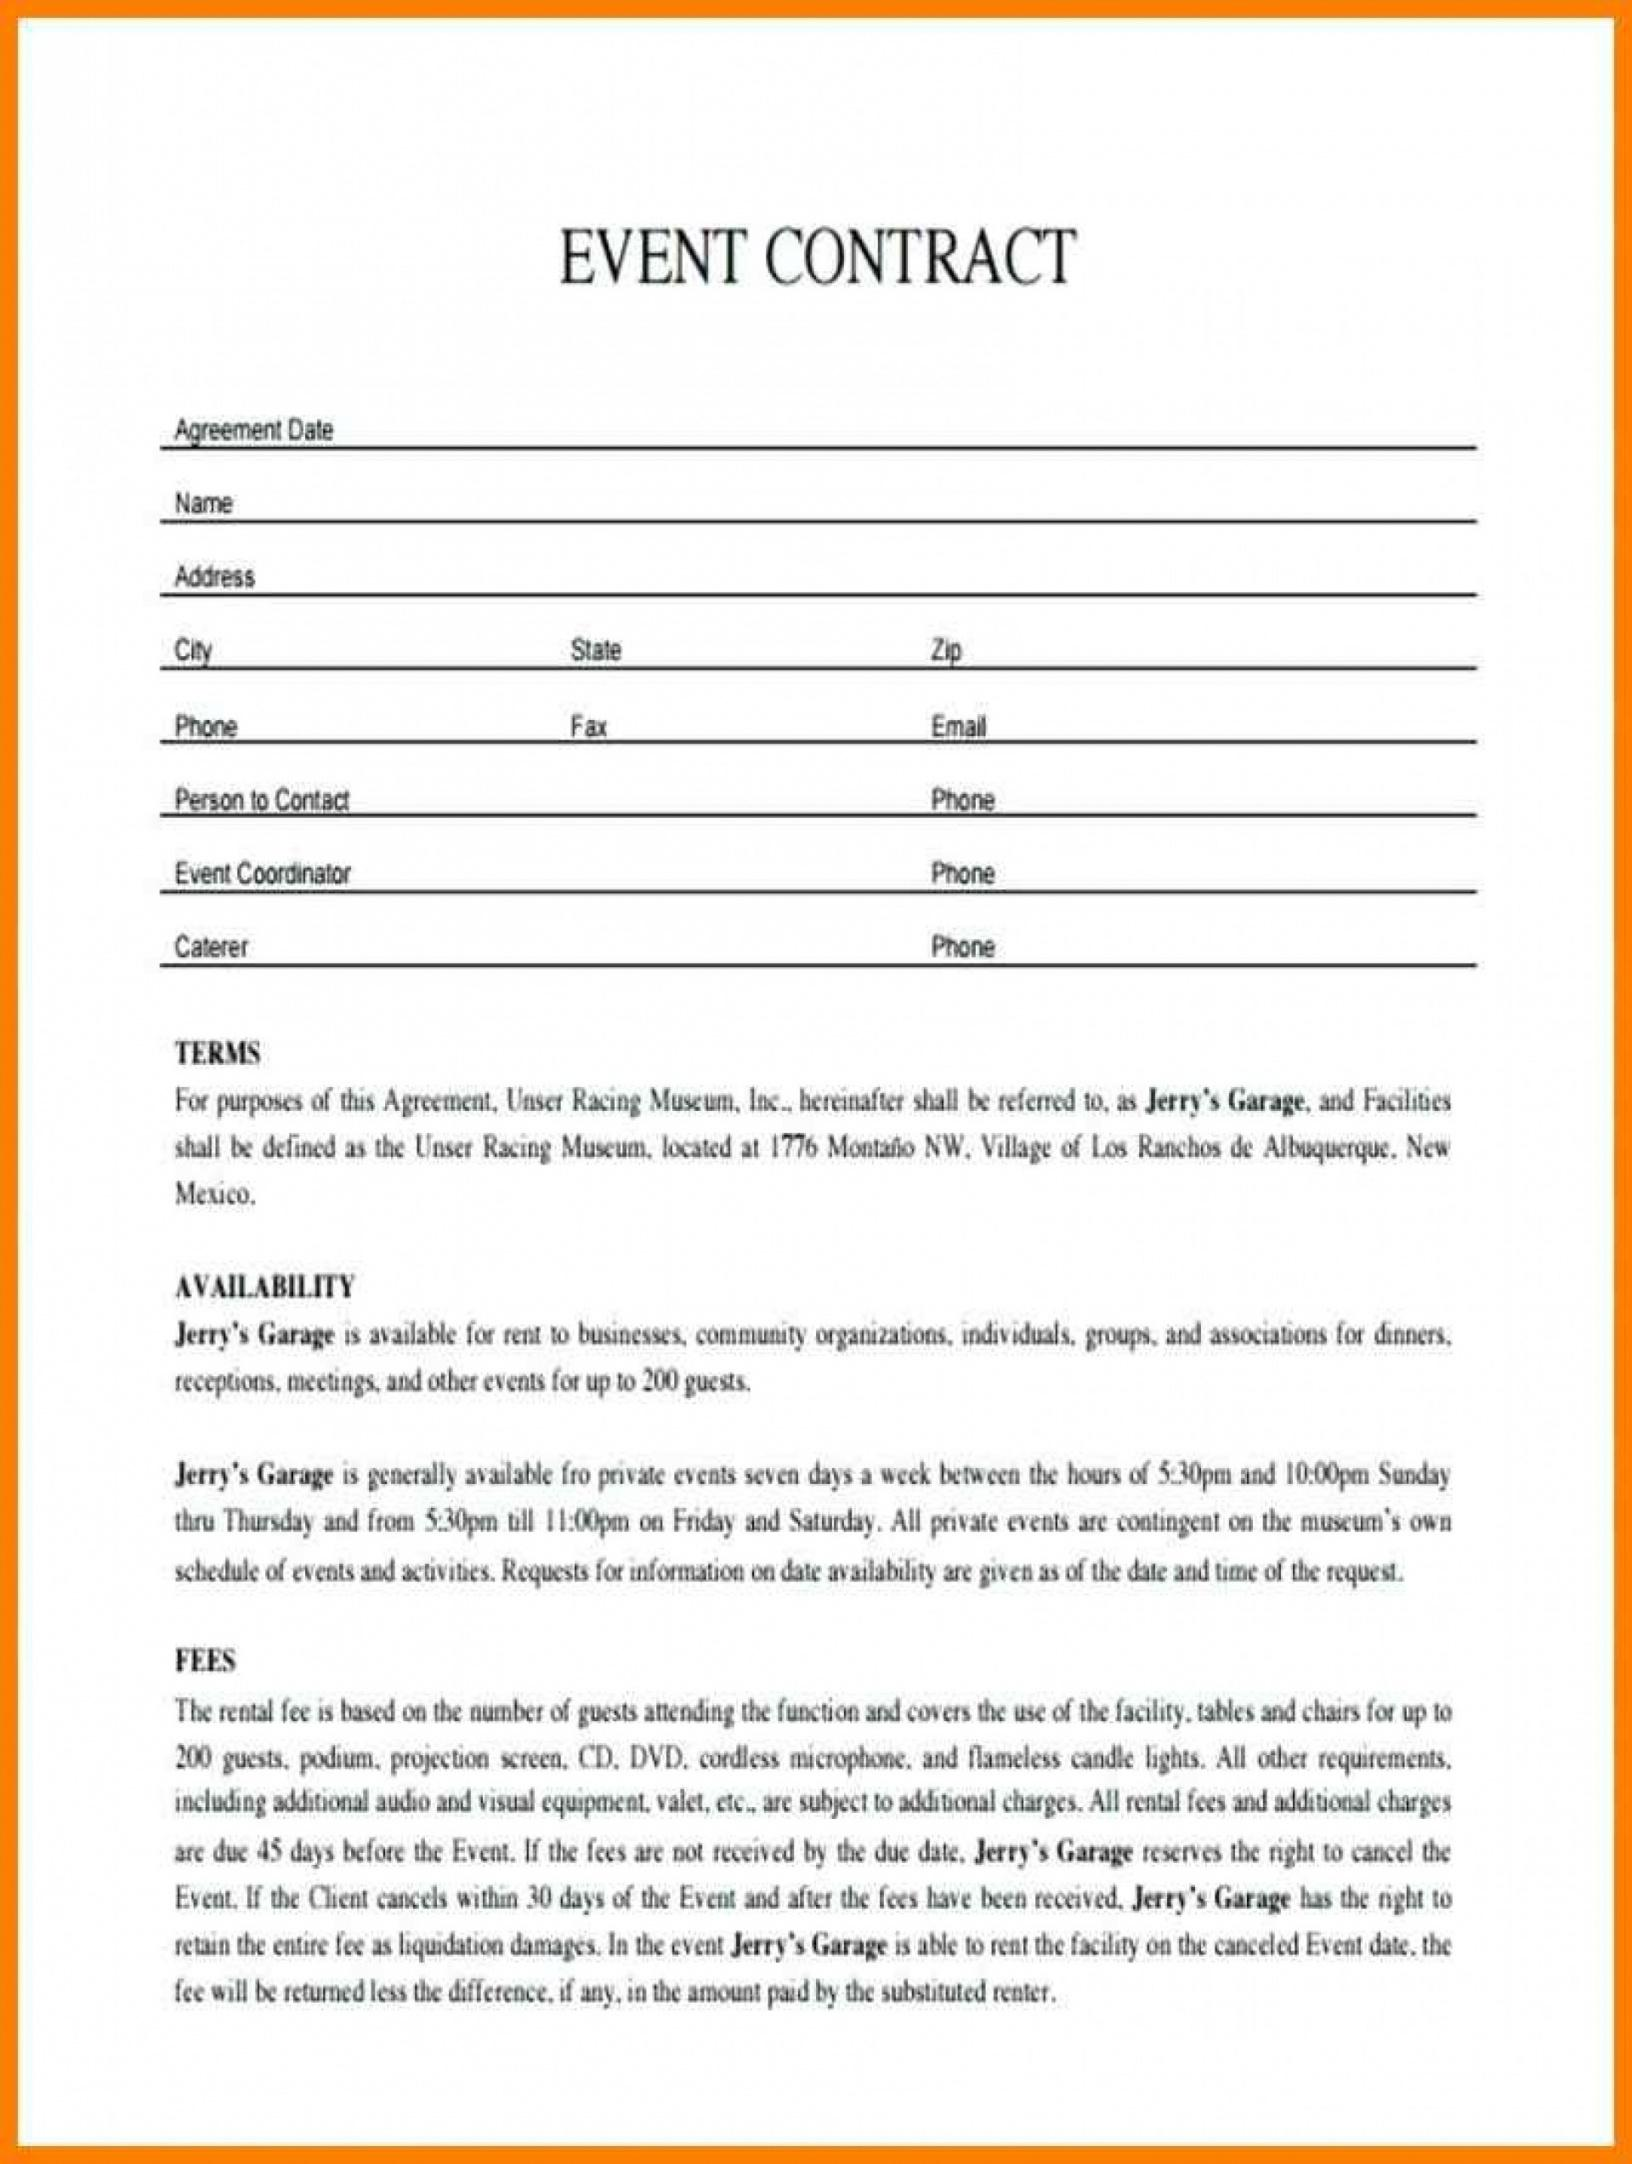 our 011 plan template event contract sample contracts for planners event management contract agreement sample